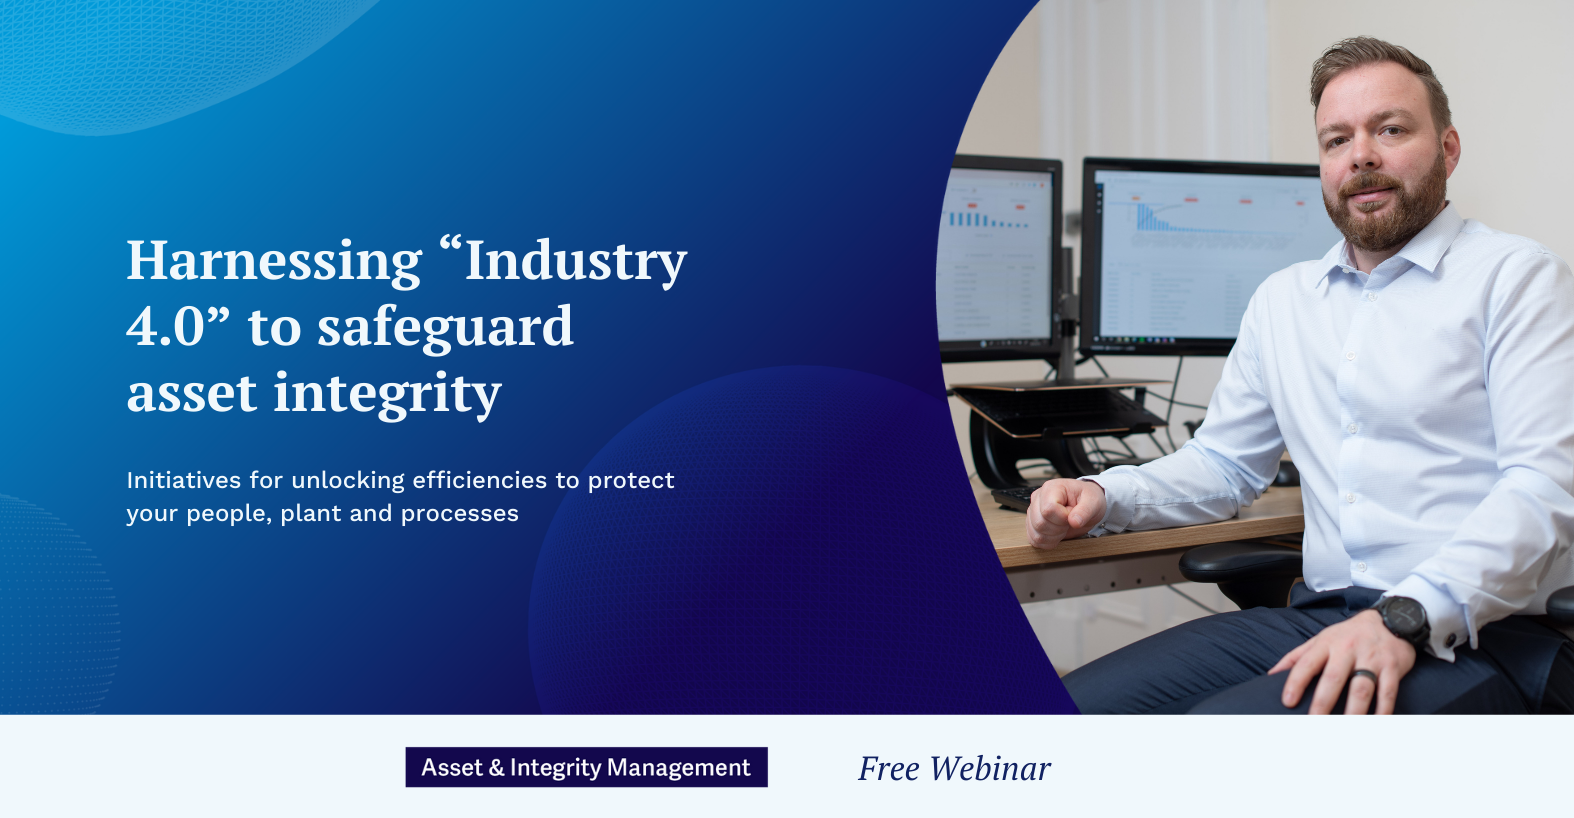 "Harnessing ""Industry 4.0"" to safeguard asset integrity: Initiatives for unlocking efficiencies to protect your people, plant and processes"